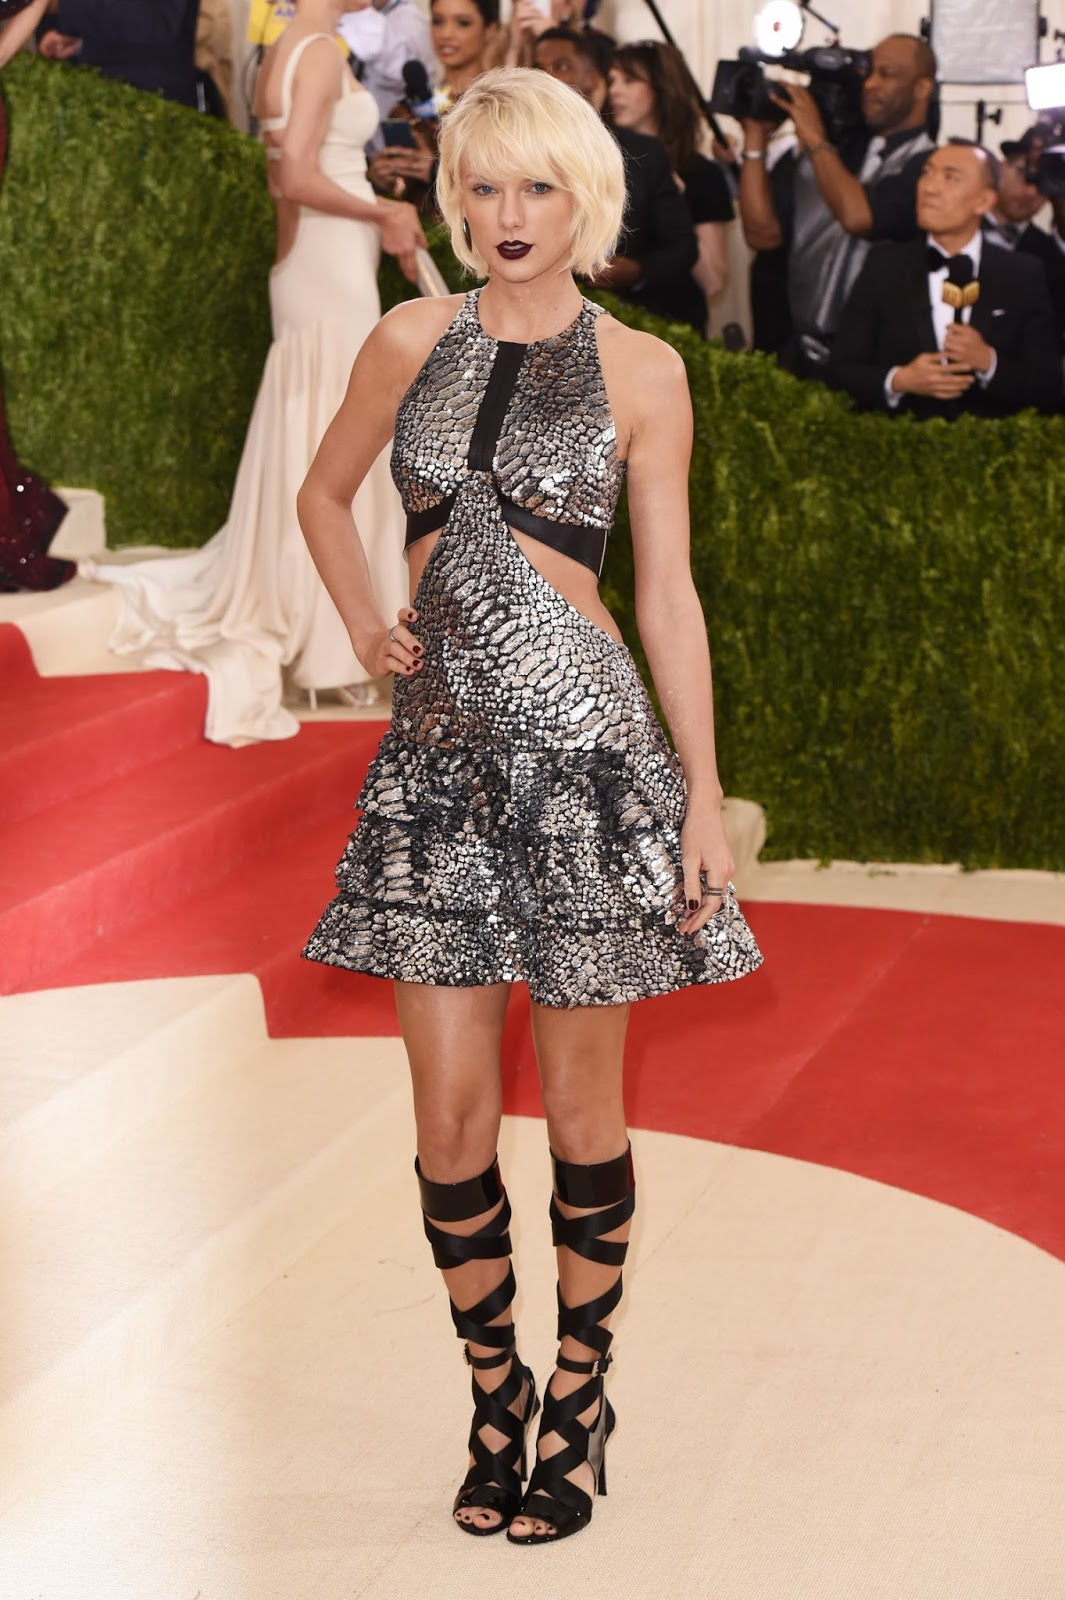 Taylor Swift at Costume Institute Gala in New York City